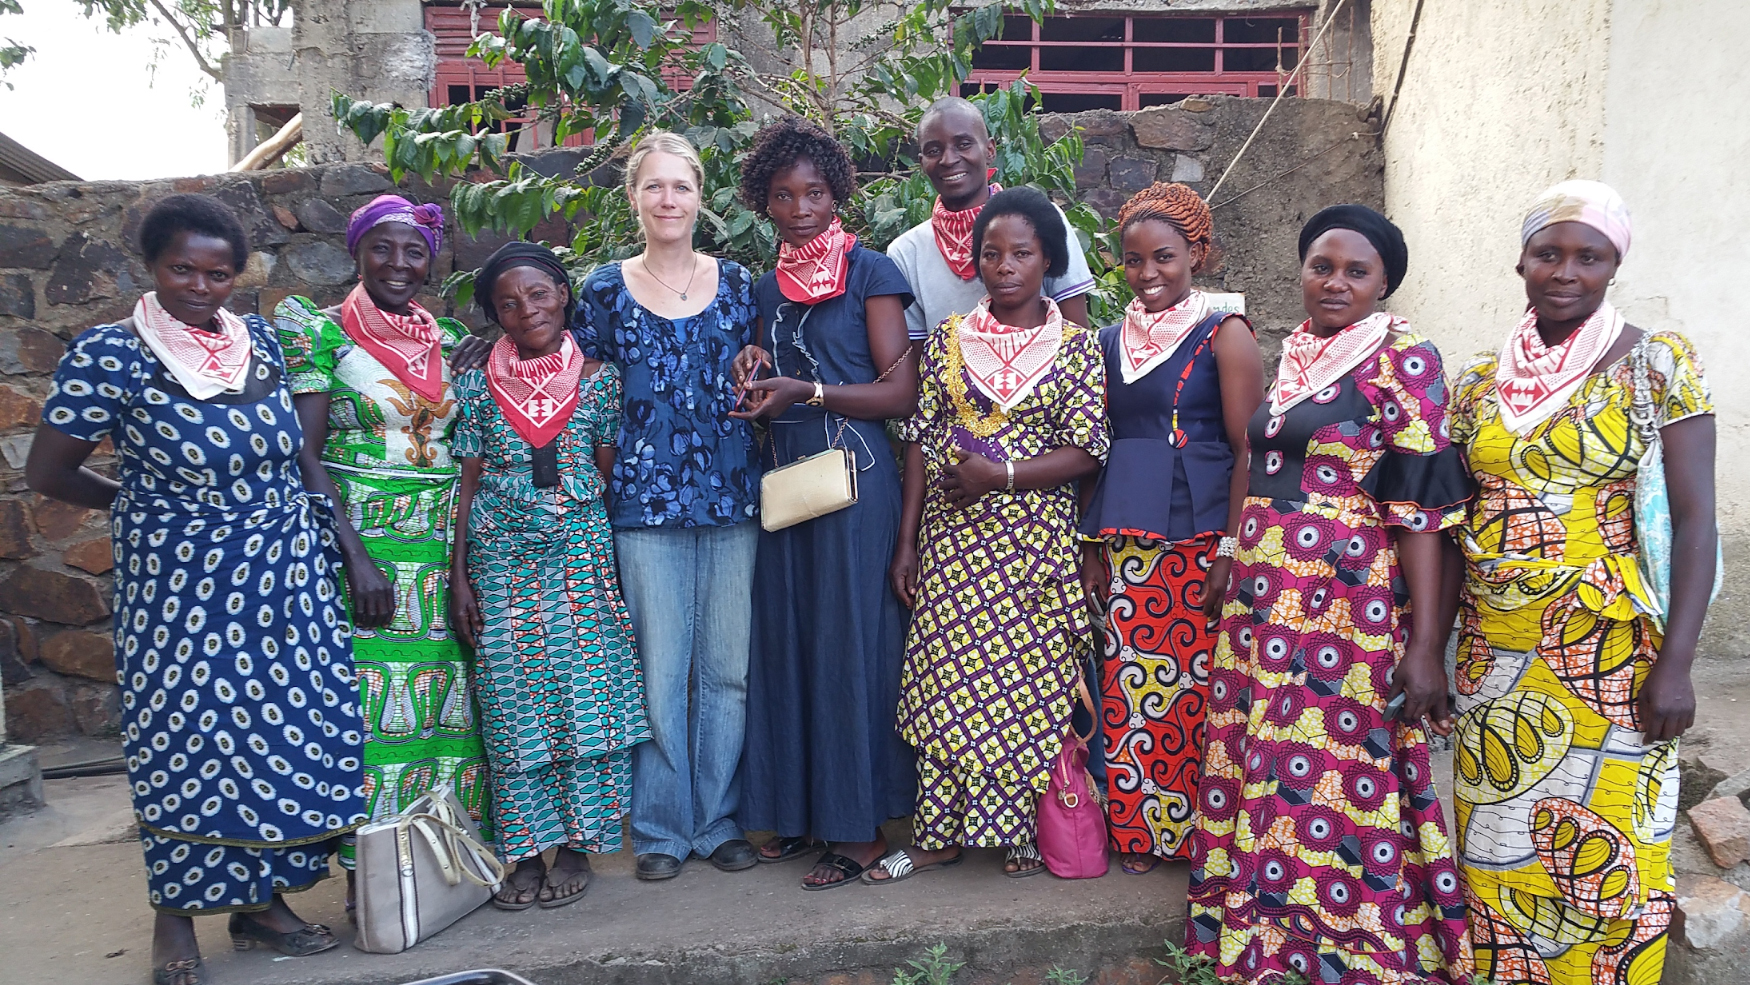 Beth Ann with representatives of the women's groups at SOPACDI